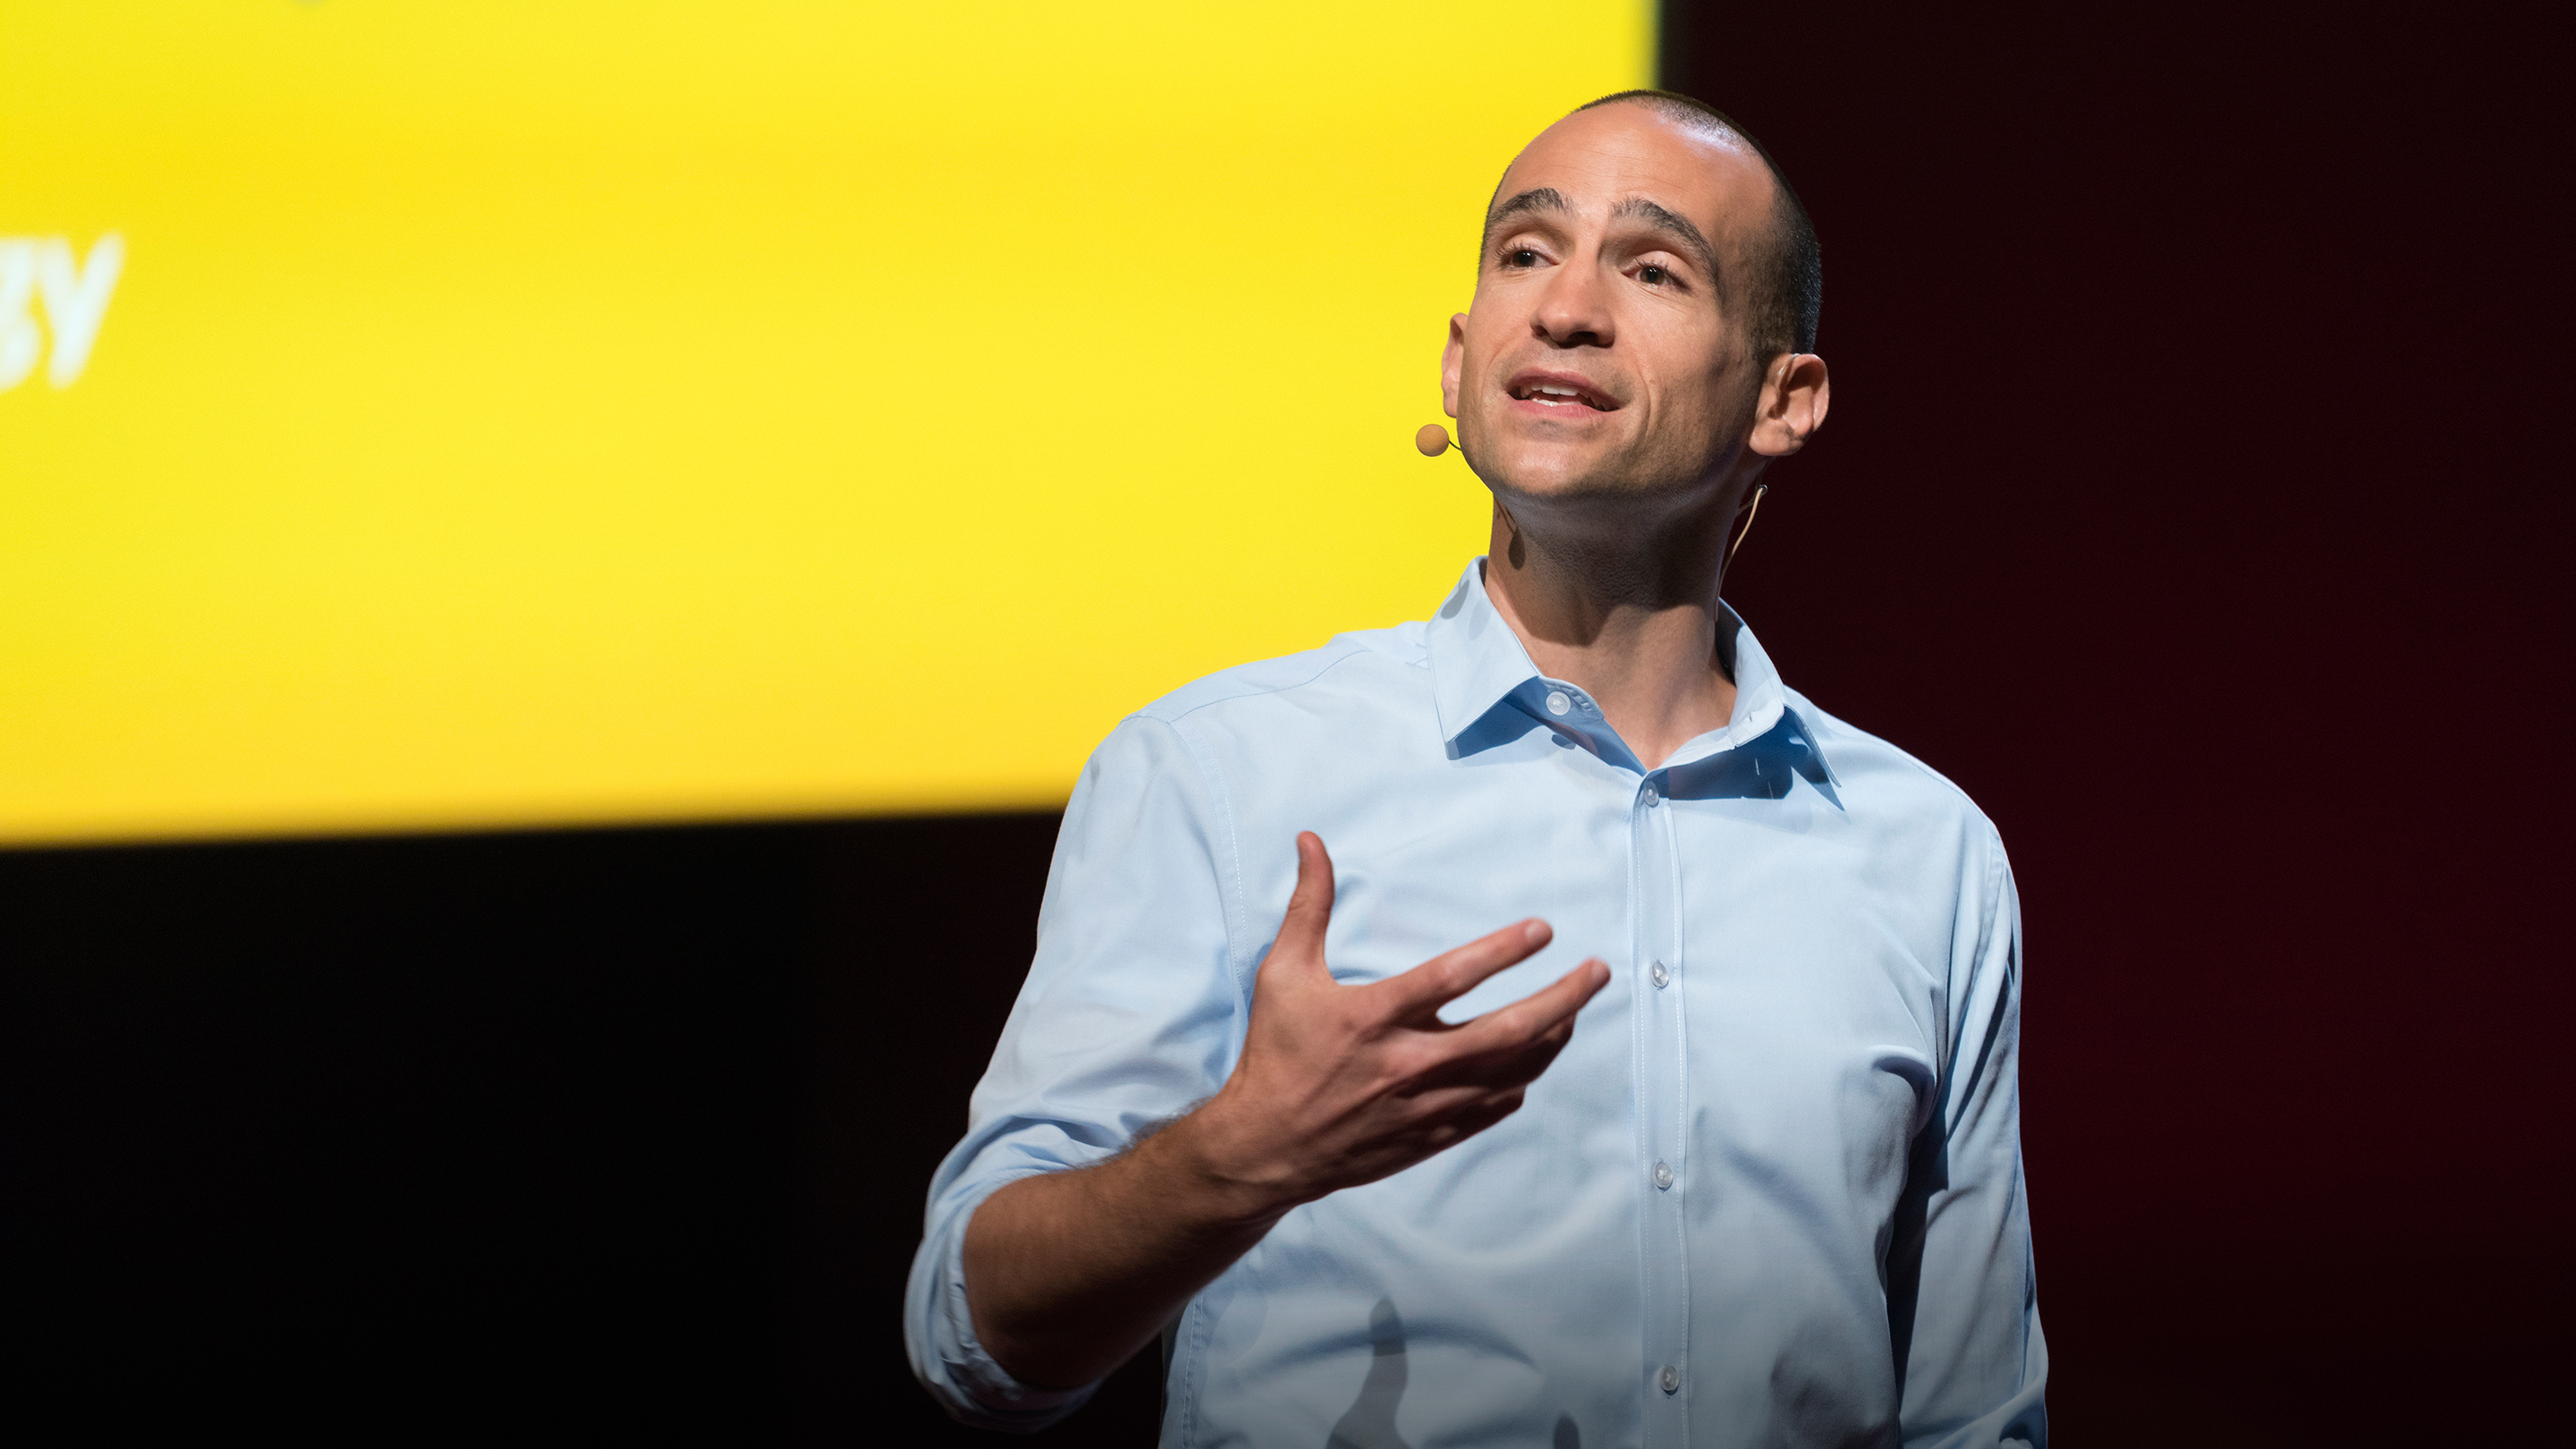 Nir Eyal speaks at TED@IBM - Necessity and Invention, October 15, 2015, Yerba Buena Center for the Arts, San Francisco. Photo: Russell Edwards/TED